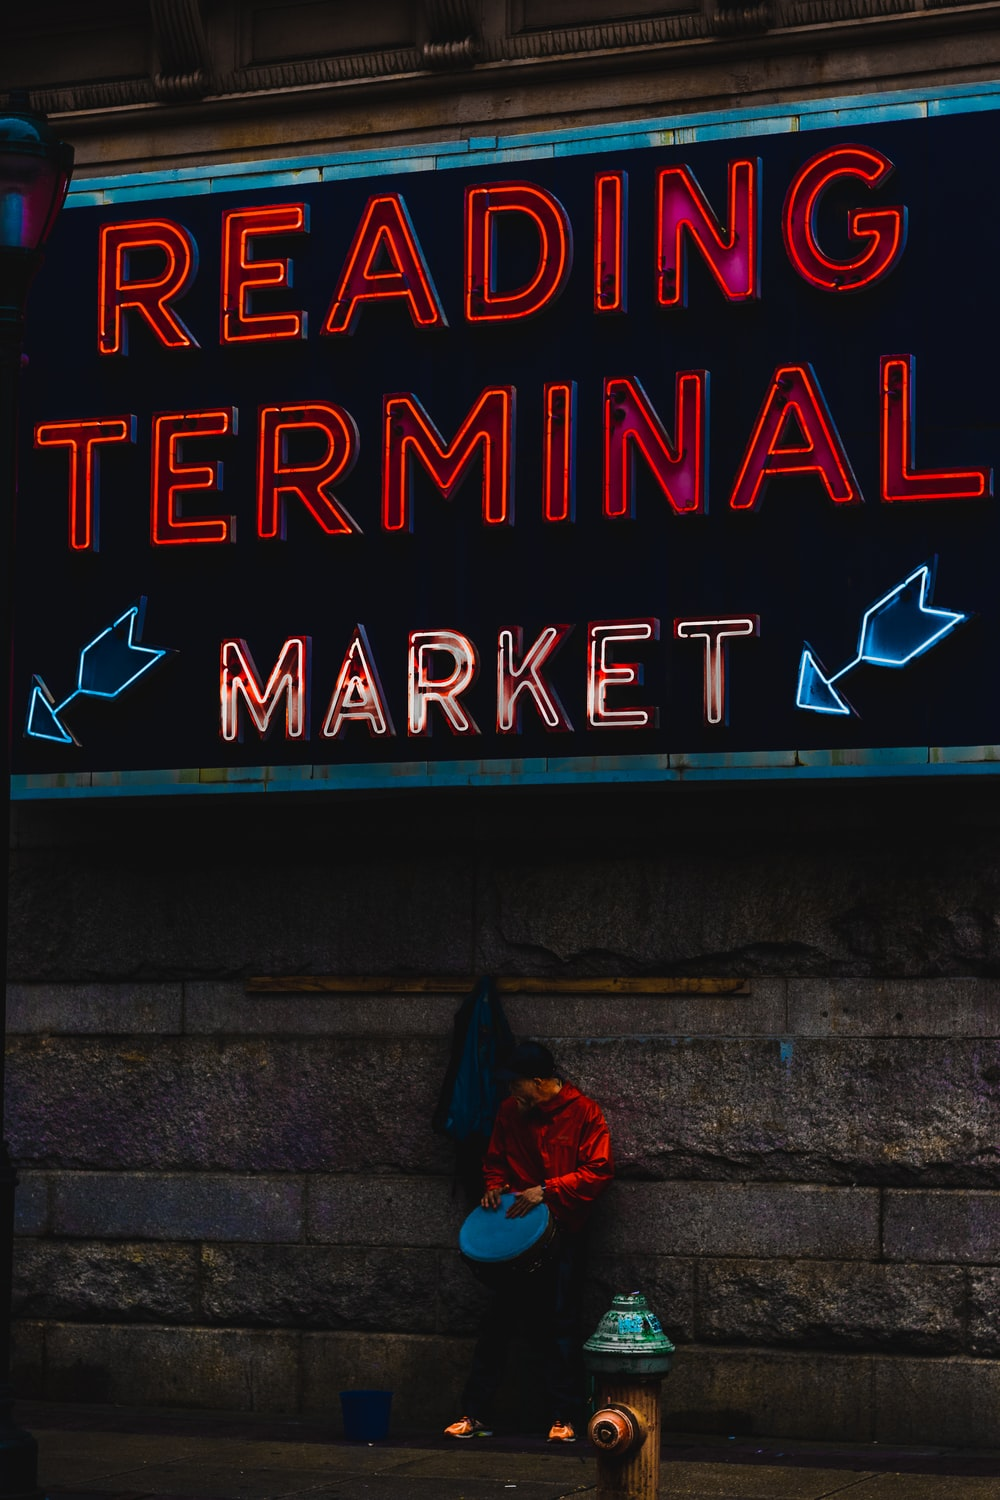 person standing near red and white reading terminal signage